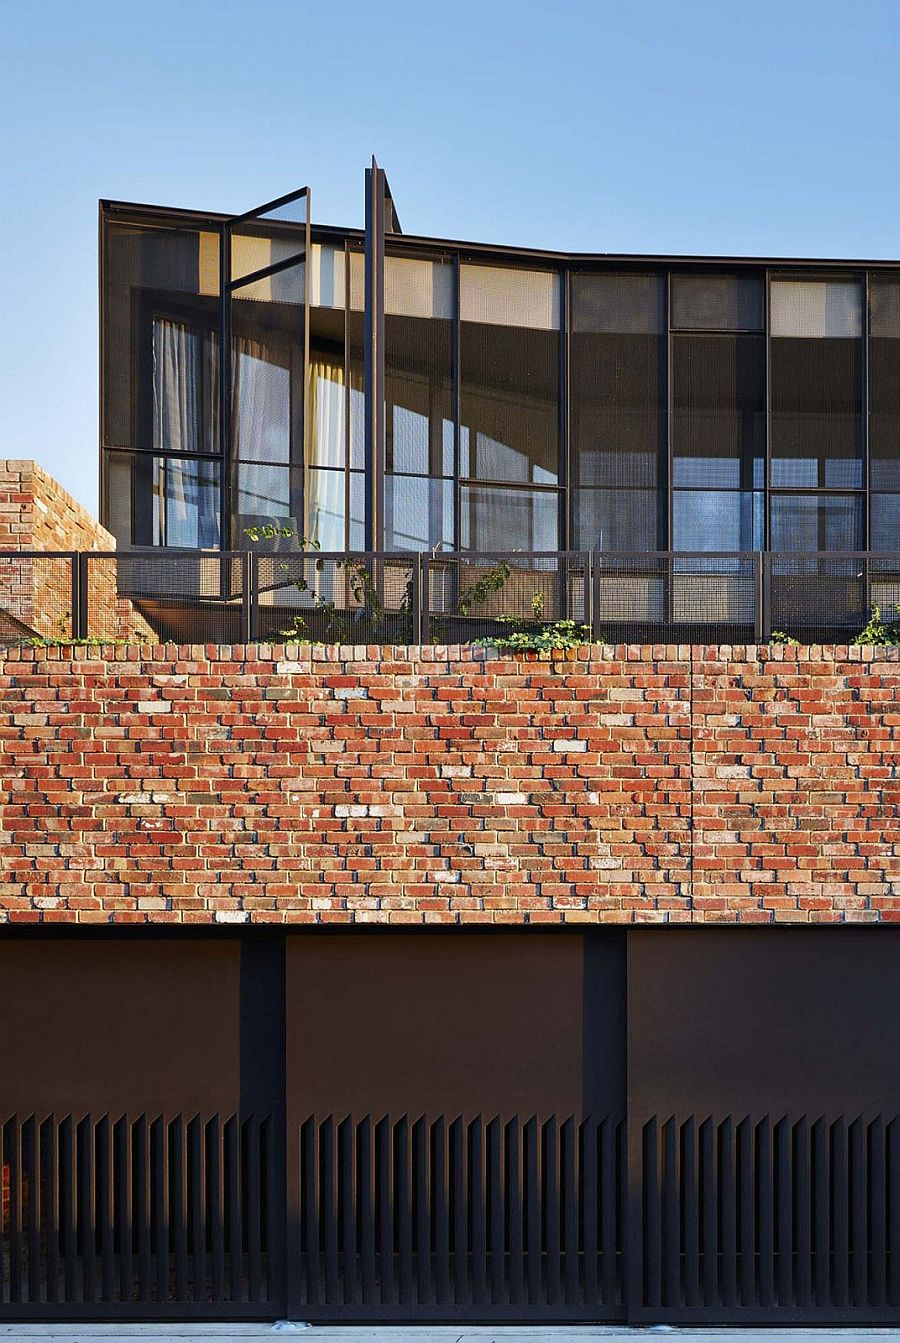 Warehouse inspired exterior of the House of Bricks in Melbourne